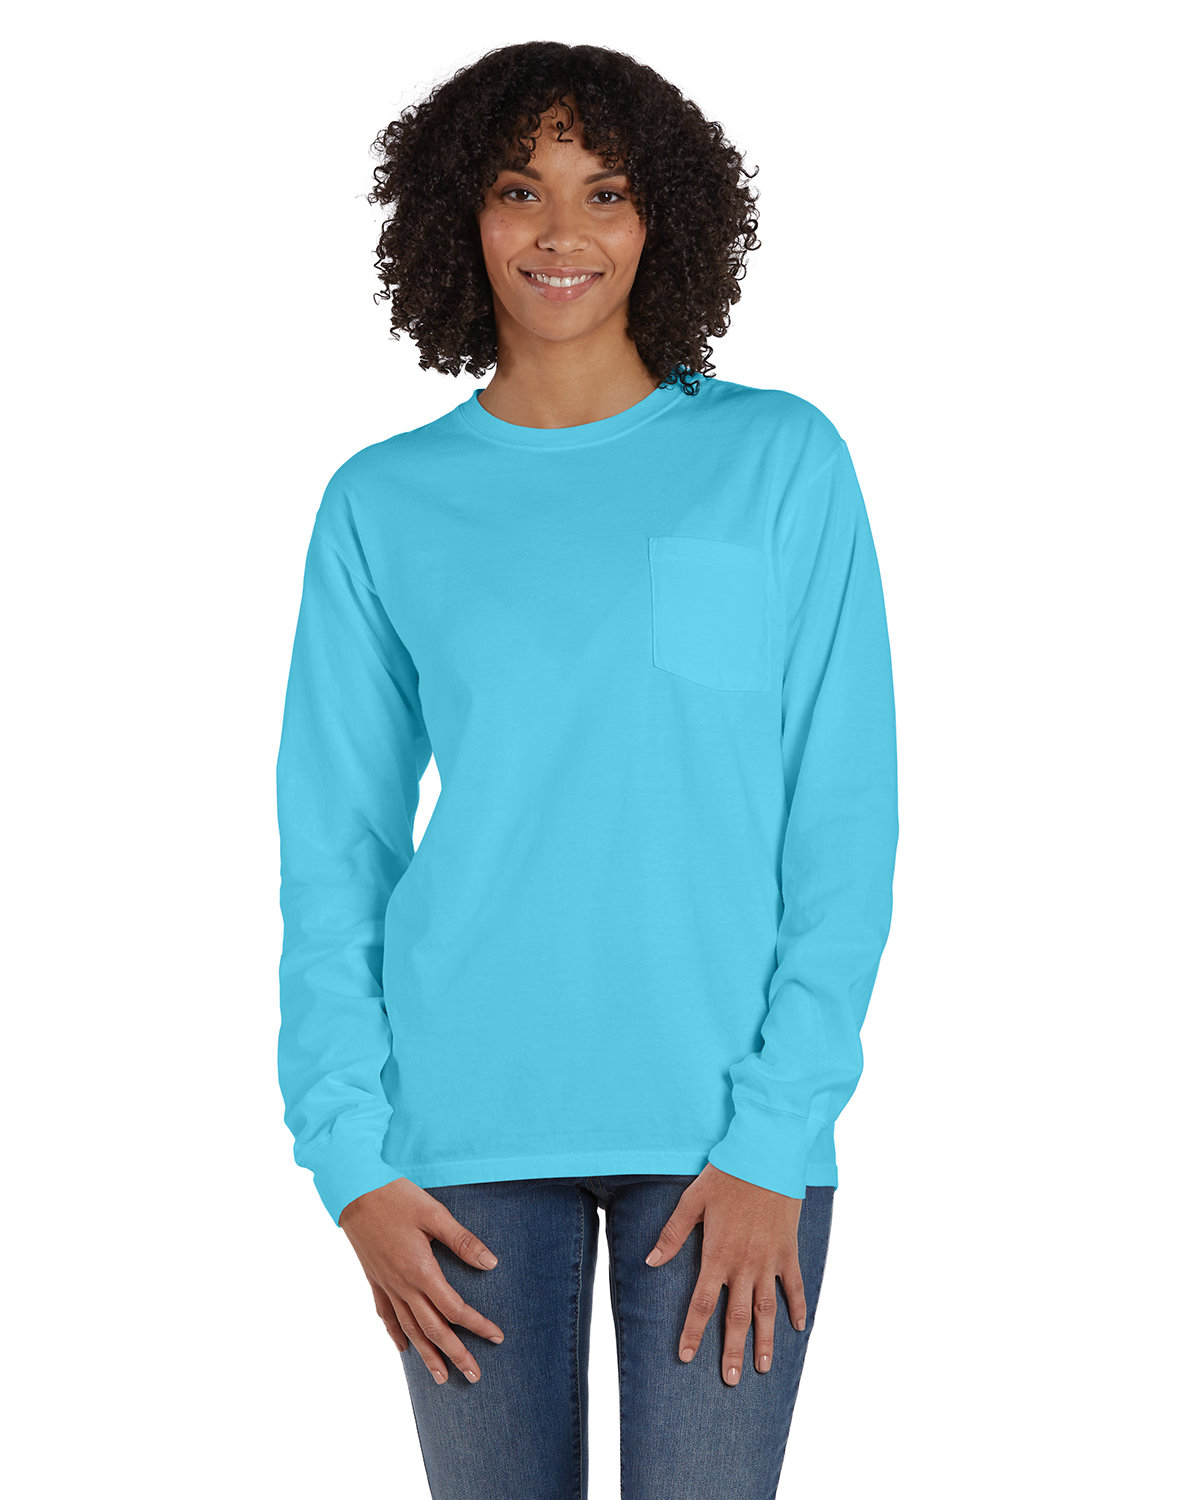 ComfortWash by Hanes Unisex Garment-Dyed Long-Sleeve T-Shirt with Pocket FRESHWATER